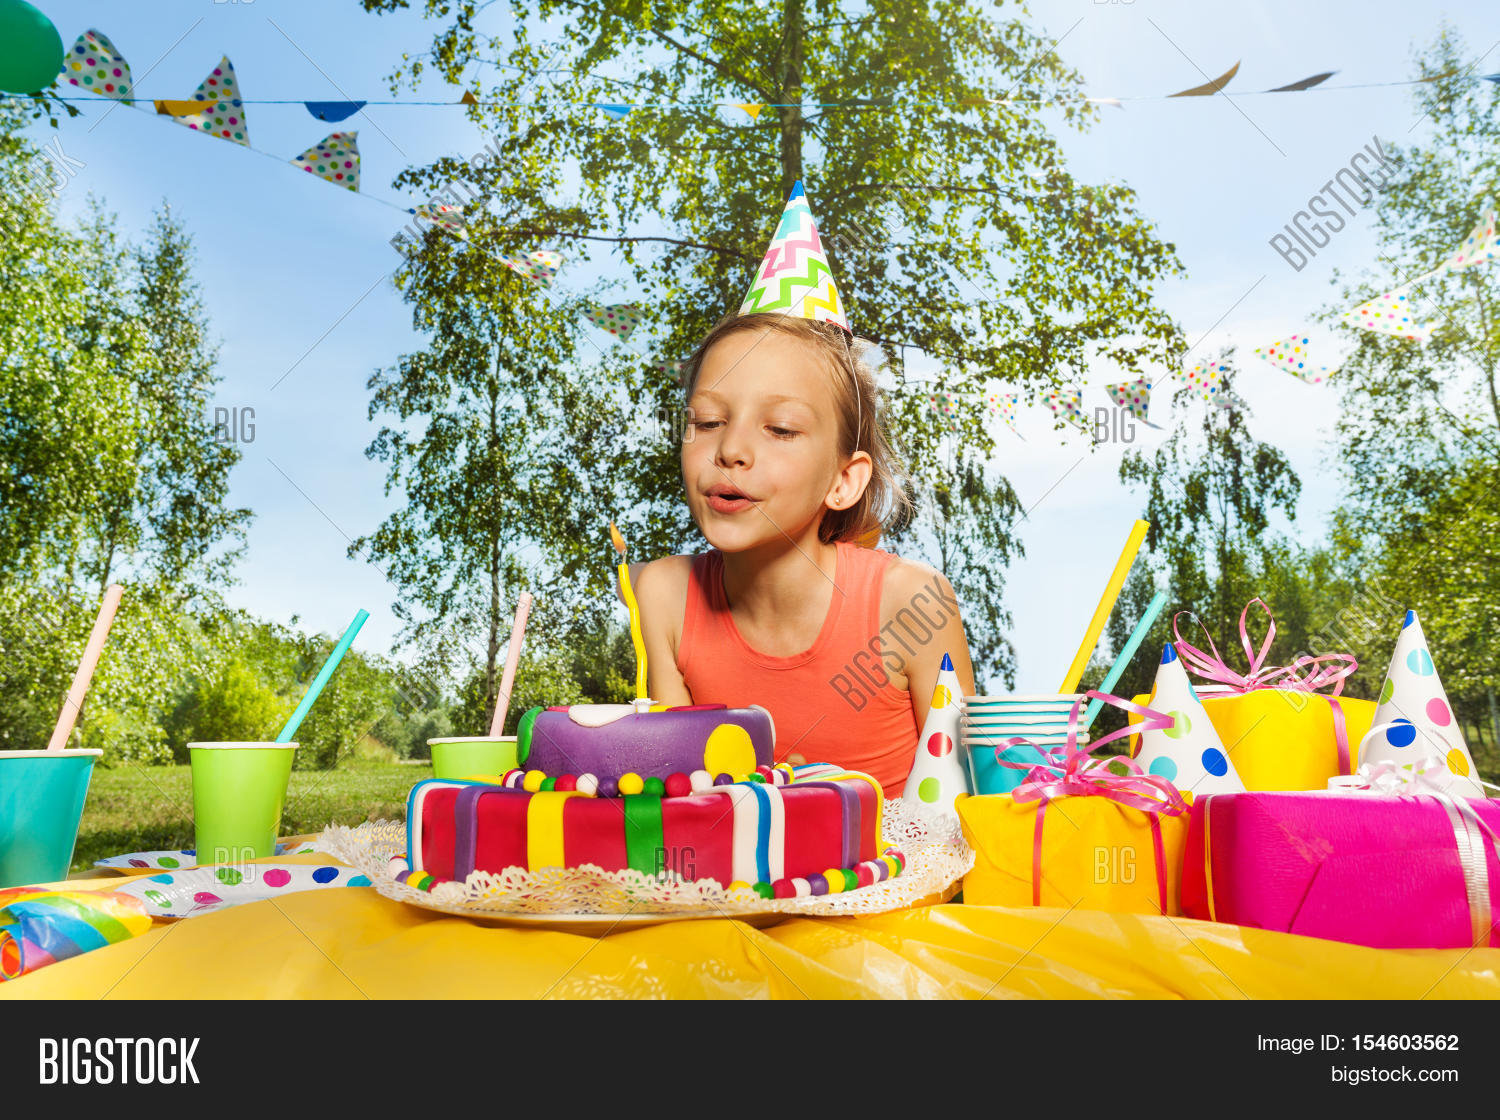 Adorable Young Girl Image Photo Free Trial Bigstock